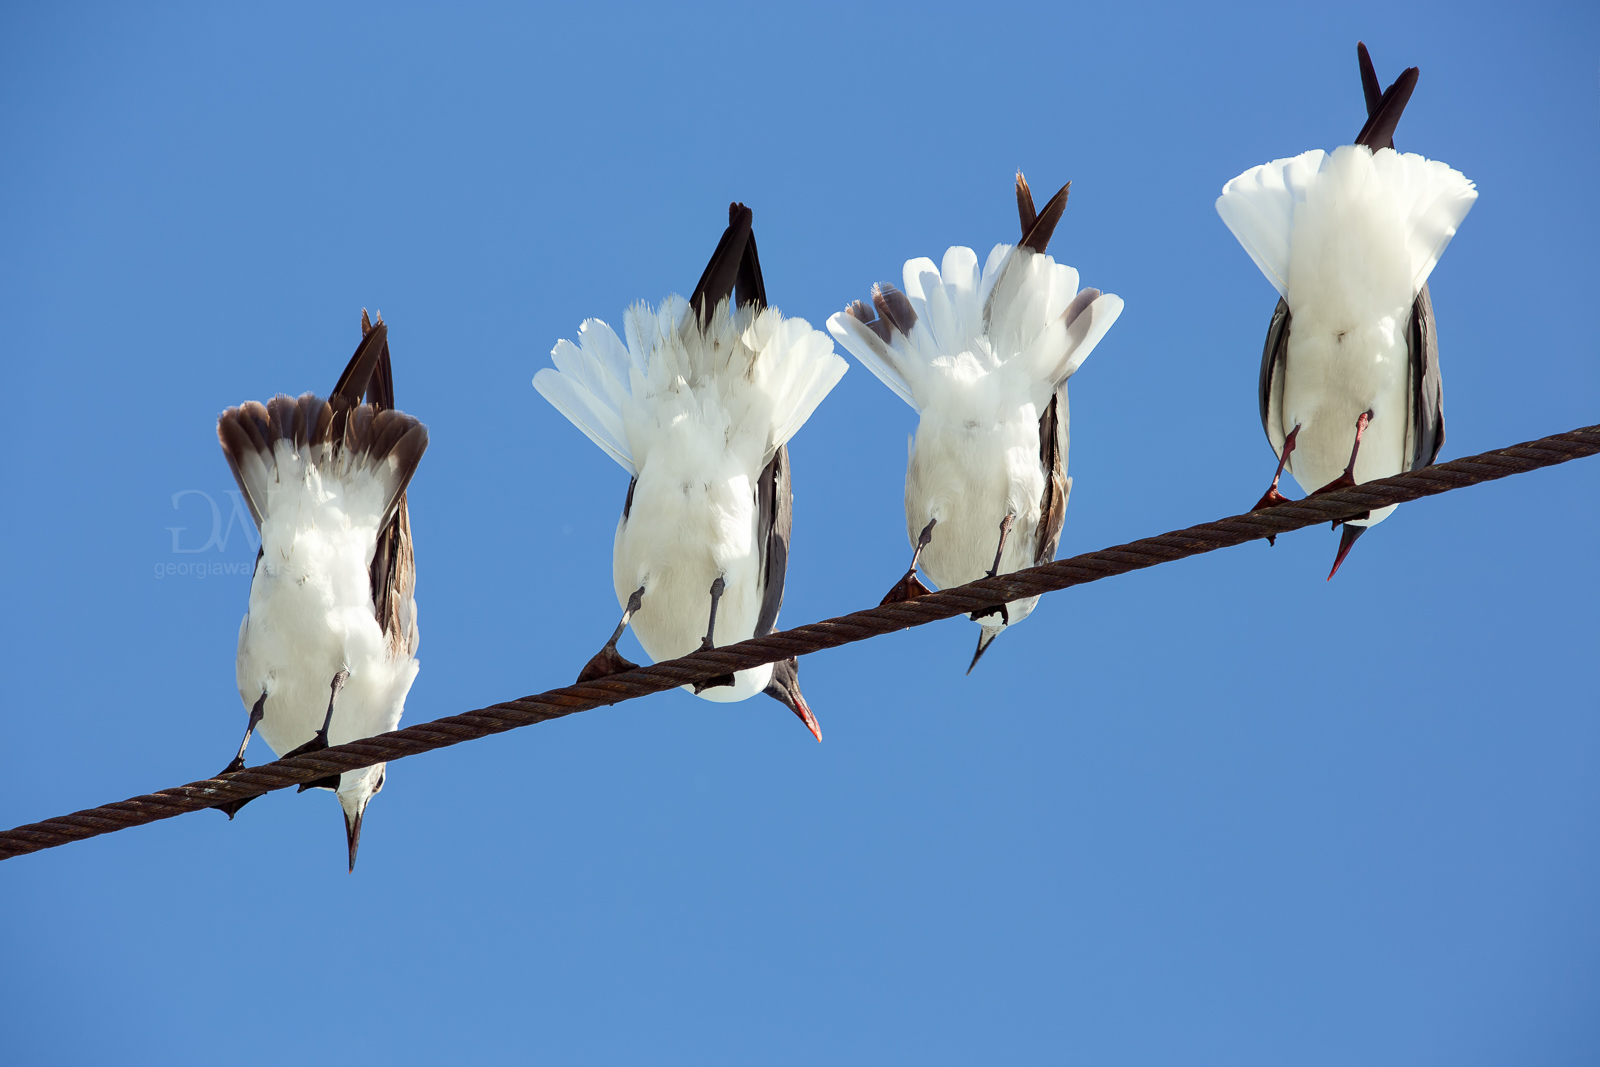 Seagulls on a guide wire.